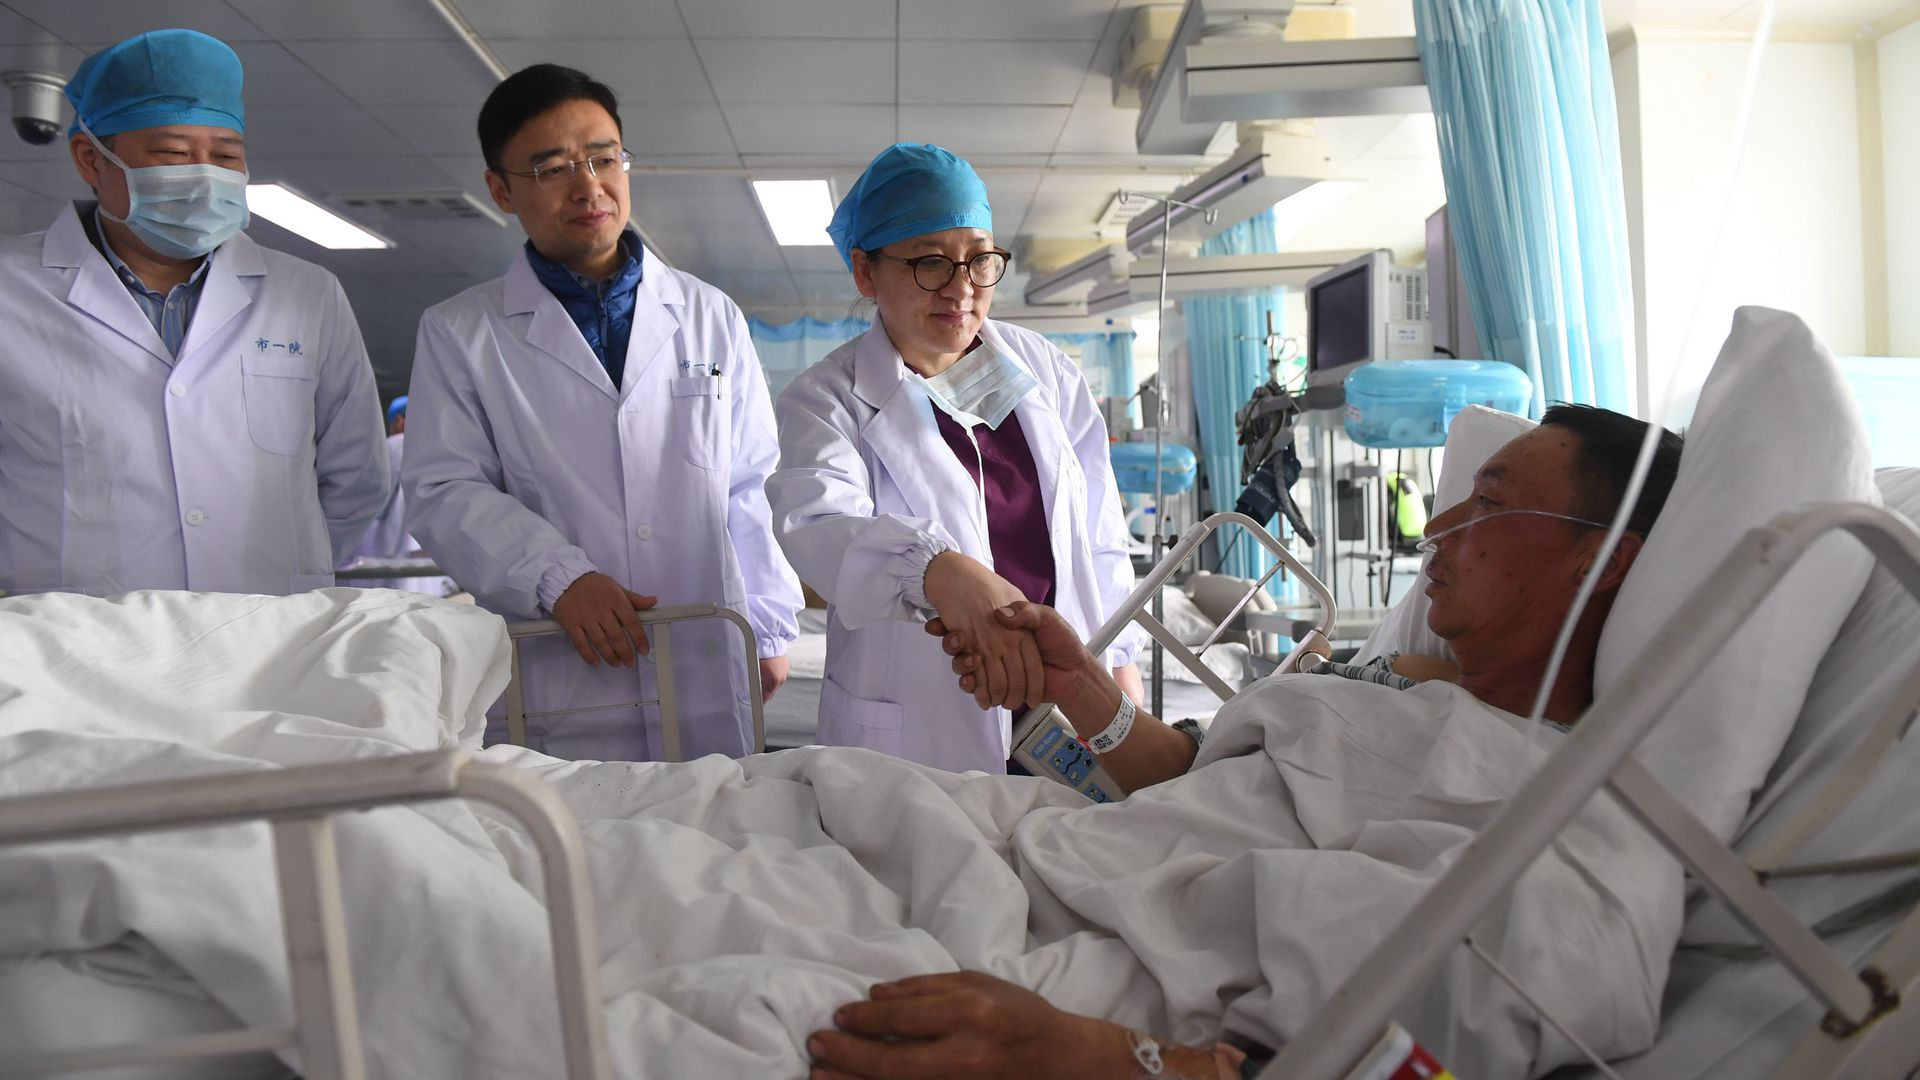 Doctors visiting a patient in a Chinese hospital